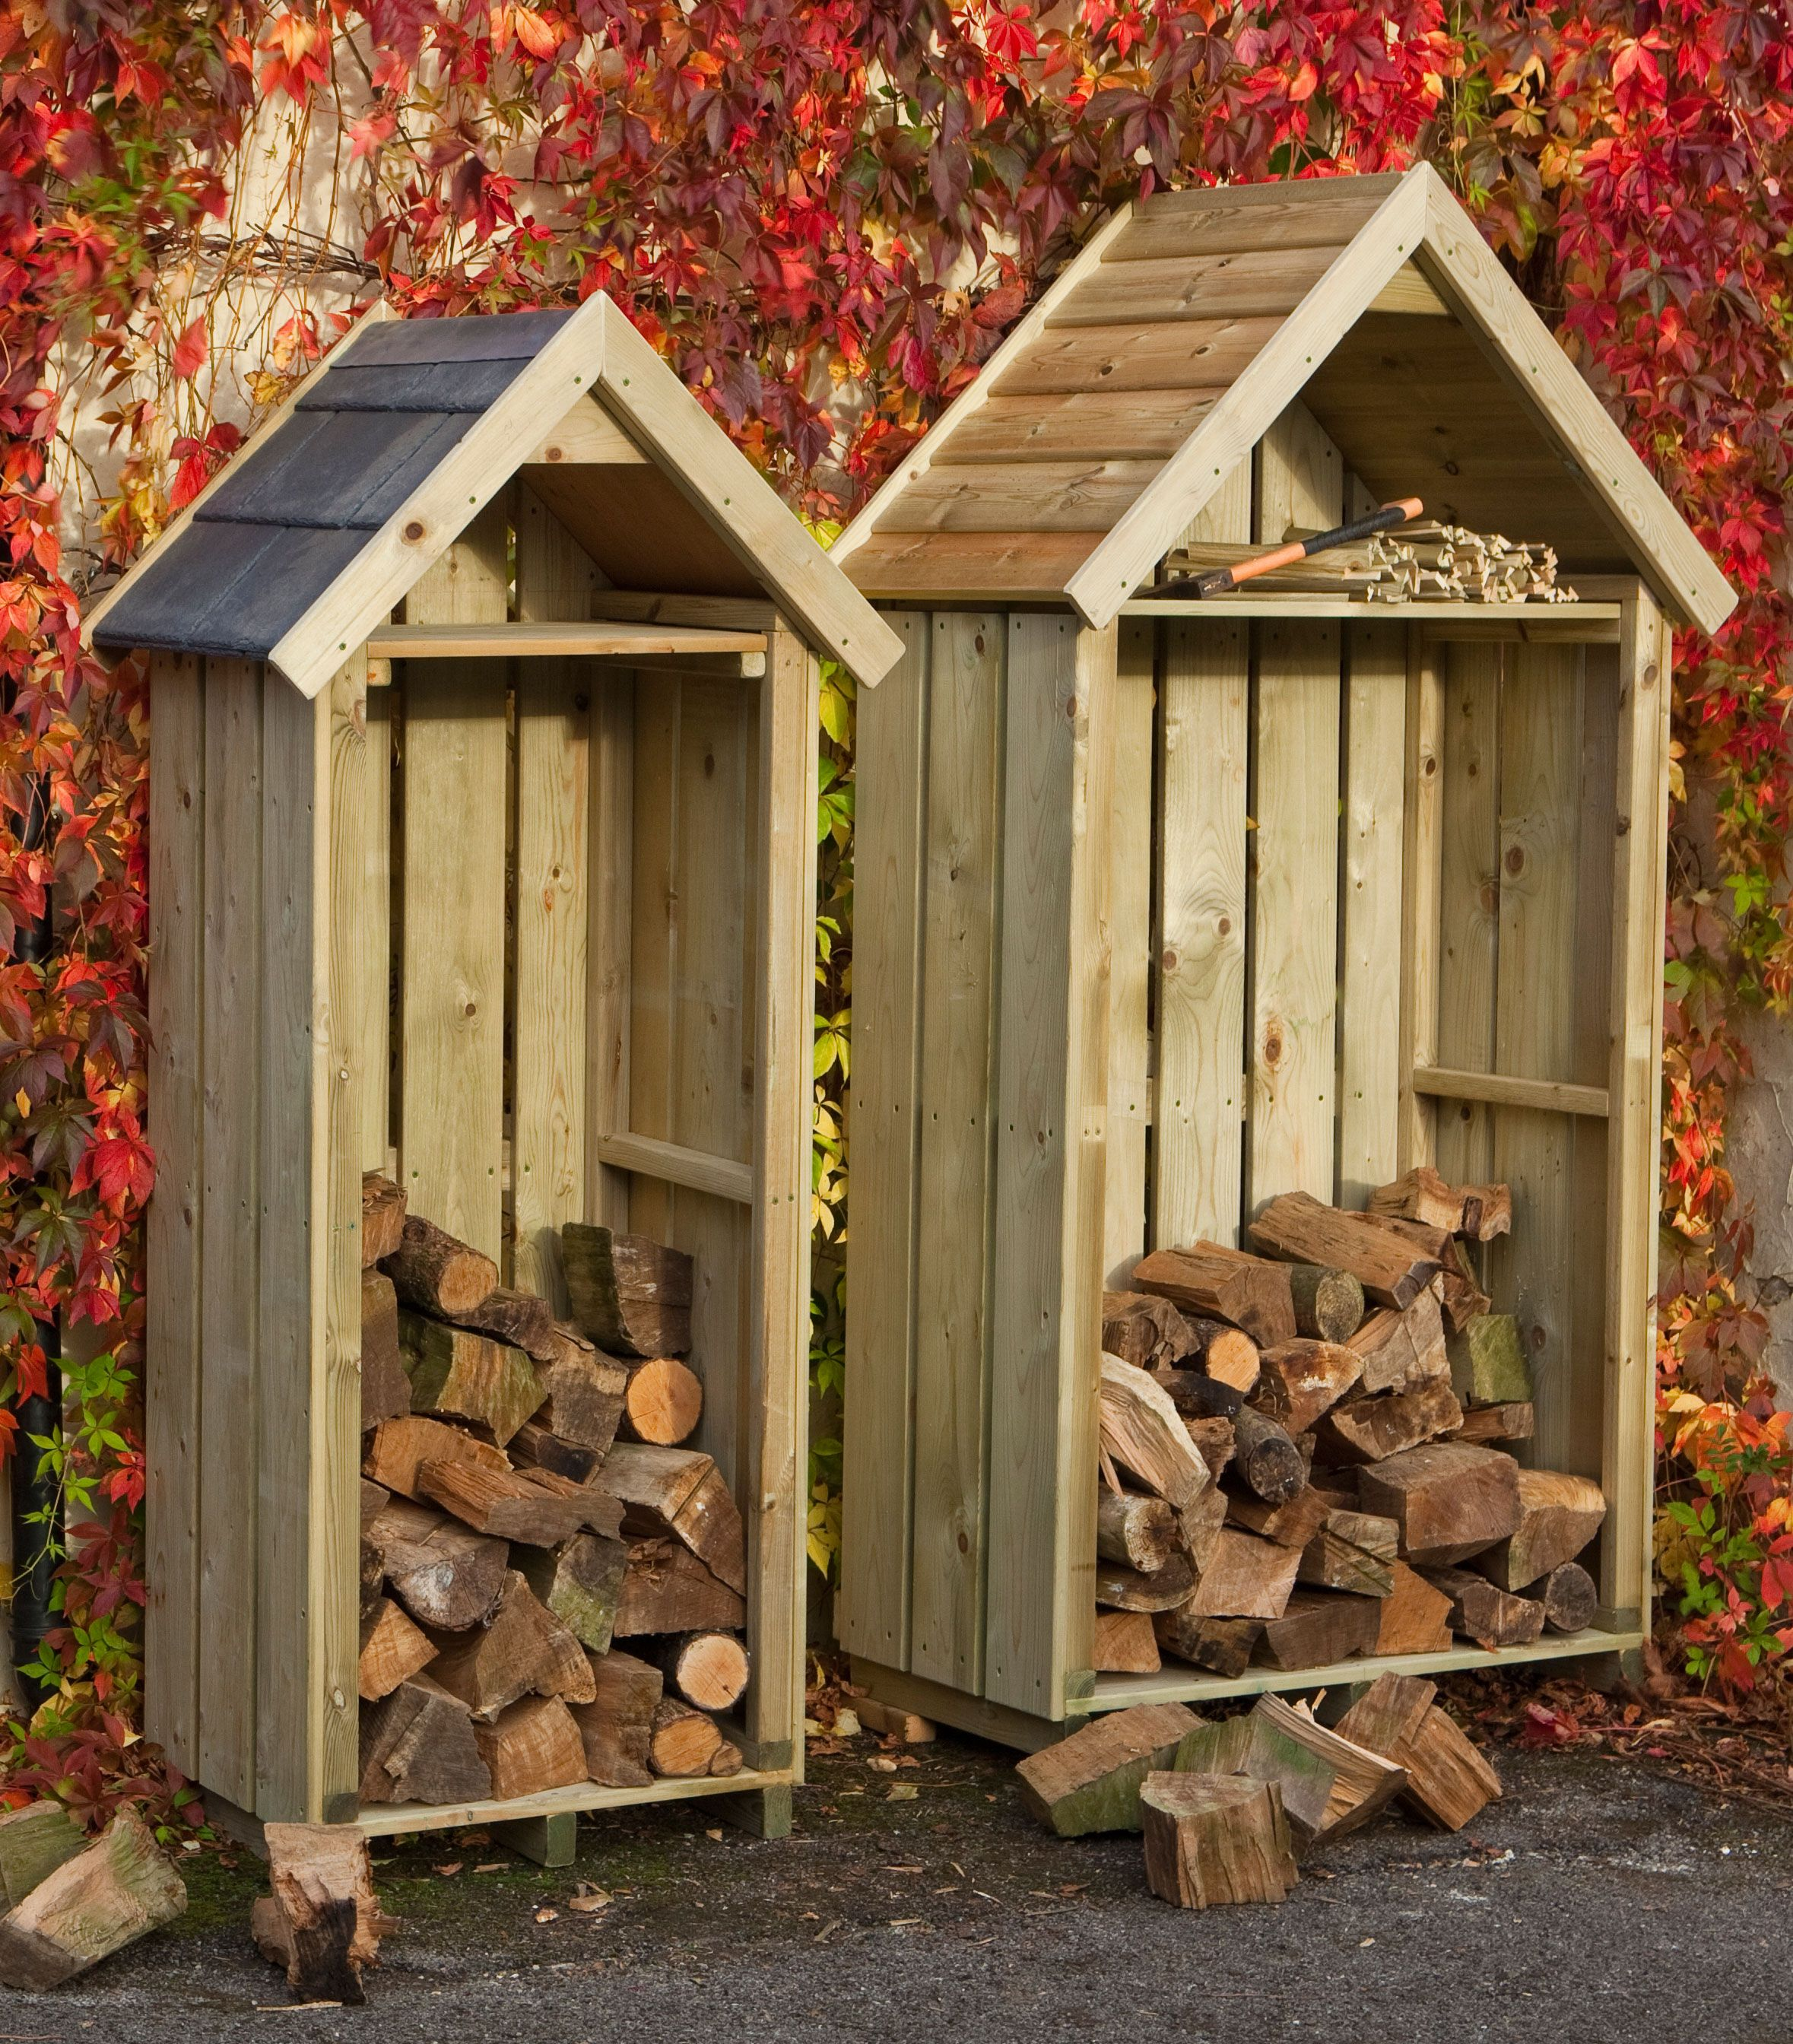 shabby fairytale sheds wood with little shed cute exterior garden small magical backyards chic